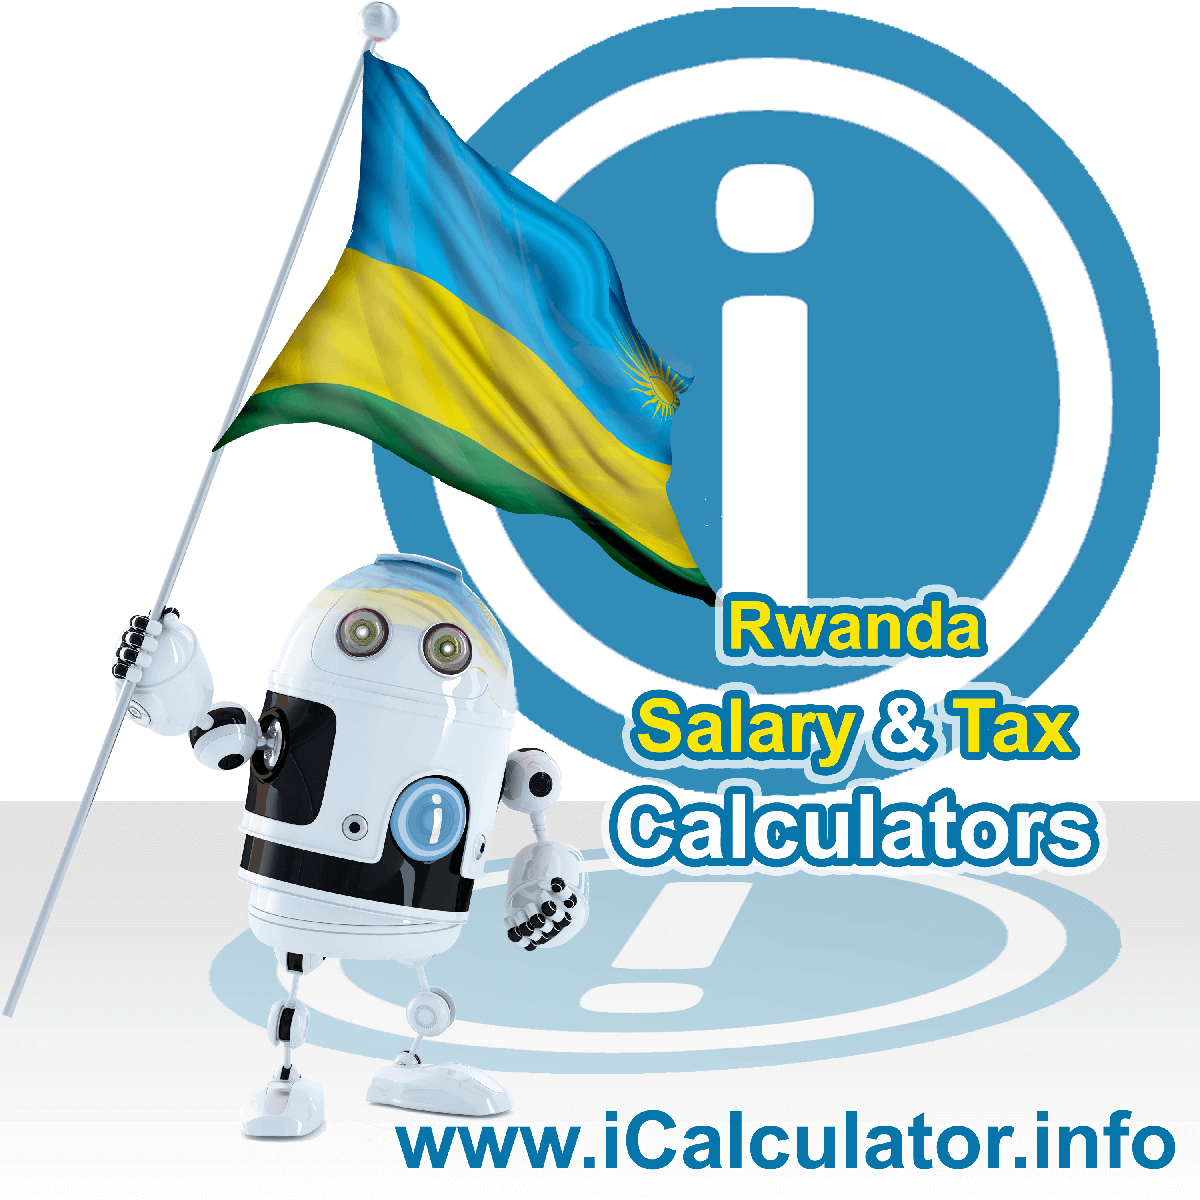 Rwanda Salary Calculator. This image shows the Rwandaese flag and information relating to the tax formula for the Rwanda Tax Calculator